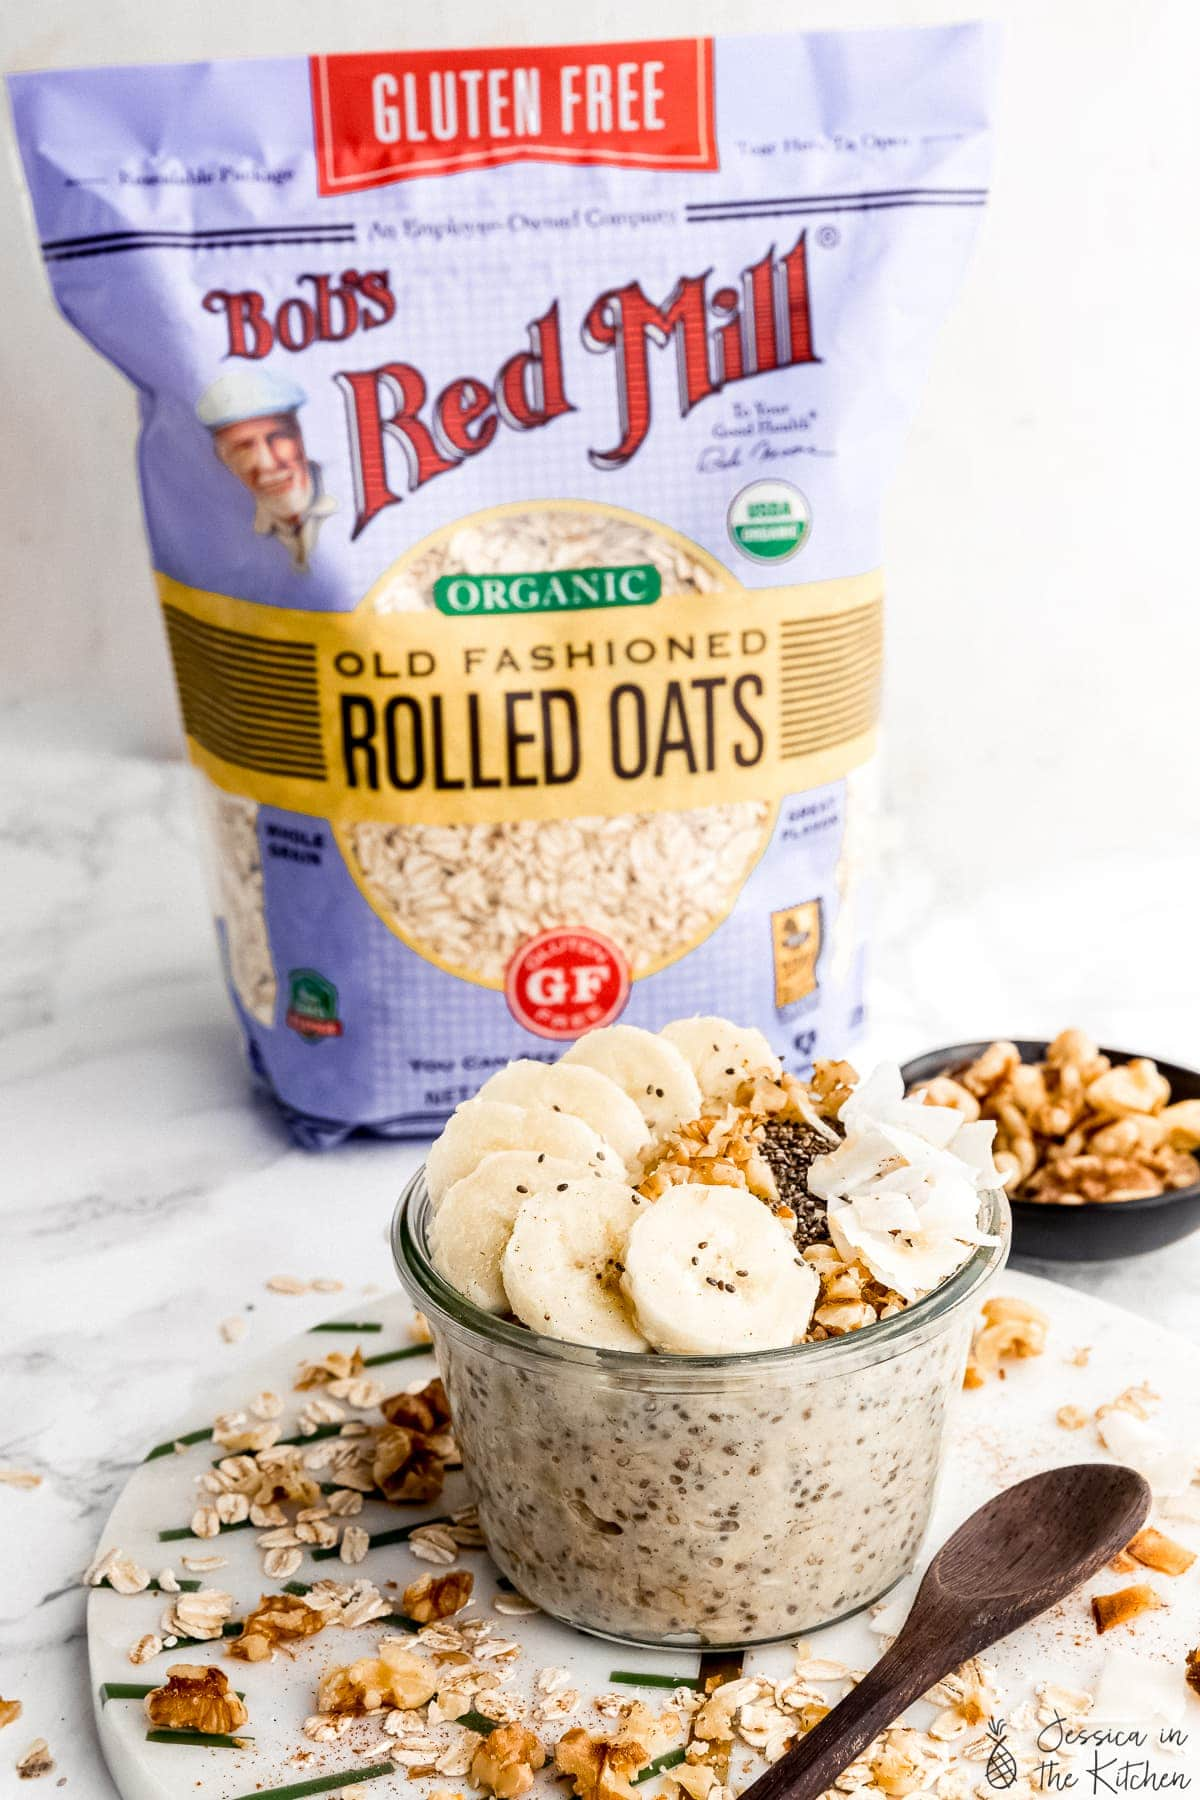 overnight oats with bag of Bob's Red Mill Old Fashioned Rolled Oats in the background